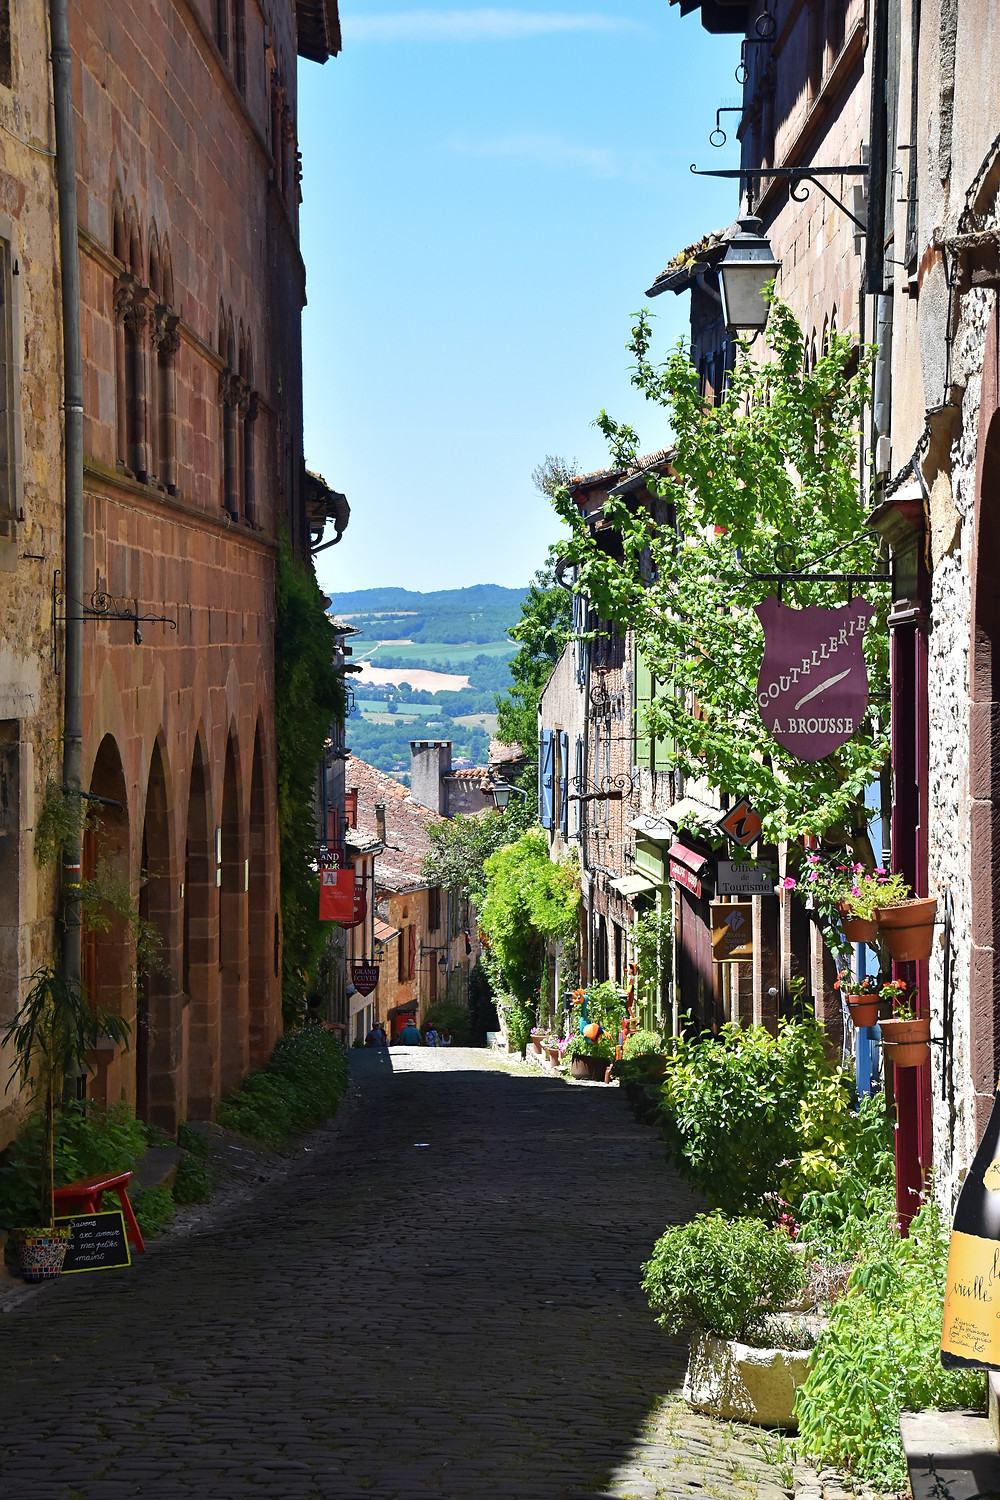 A winding medieval street in France with a view to the countryside